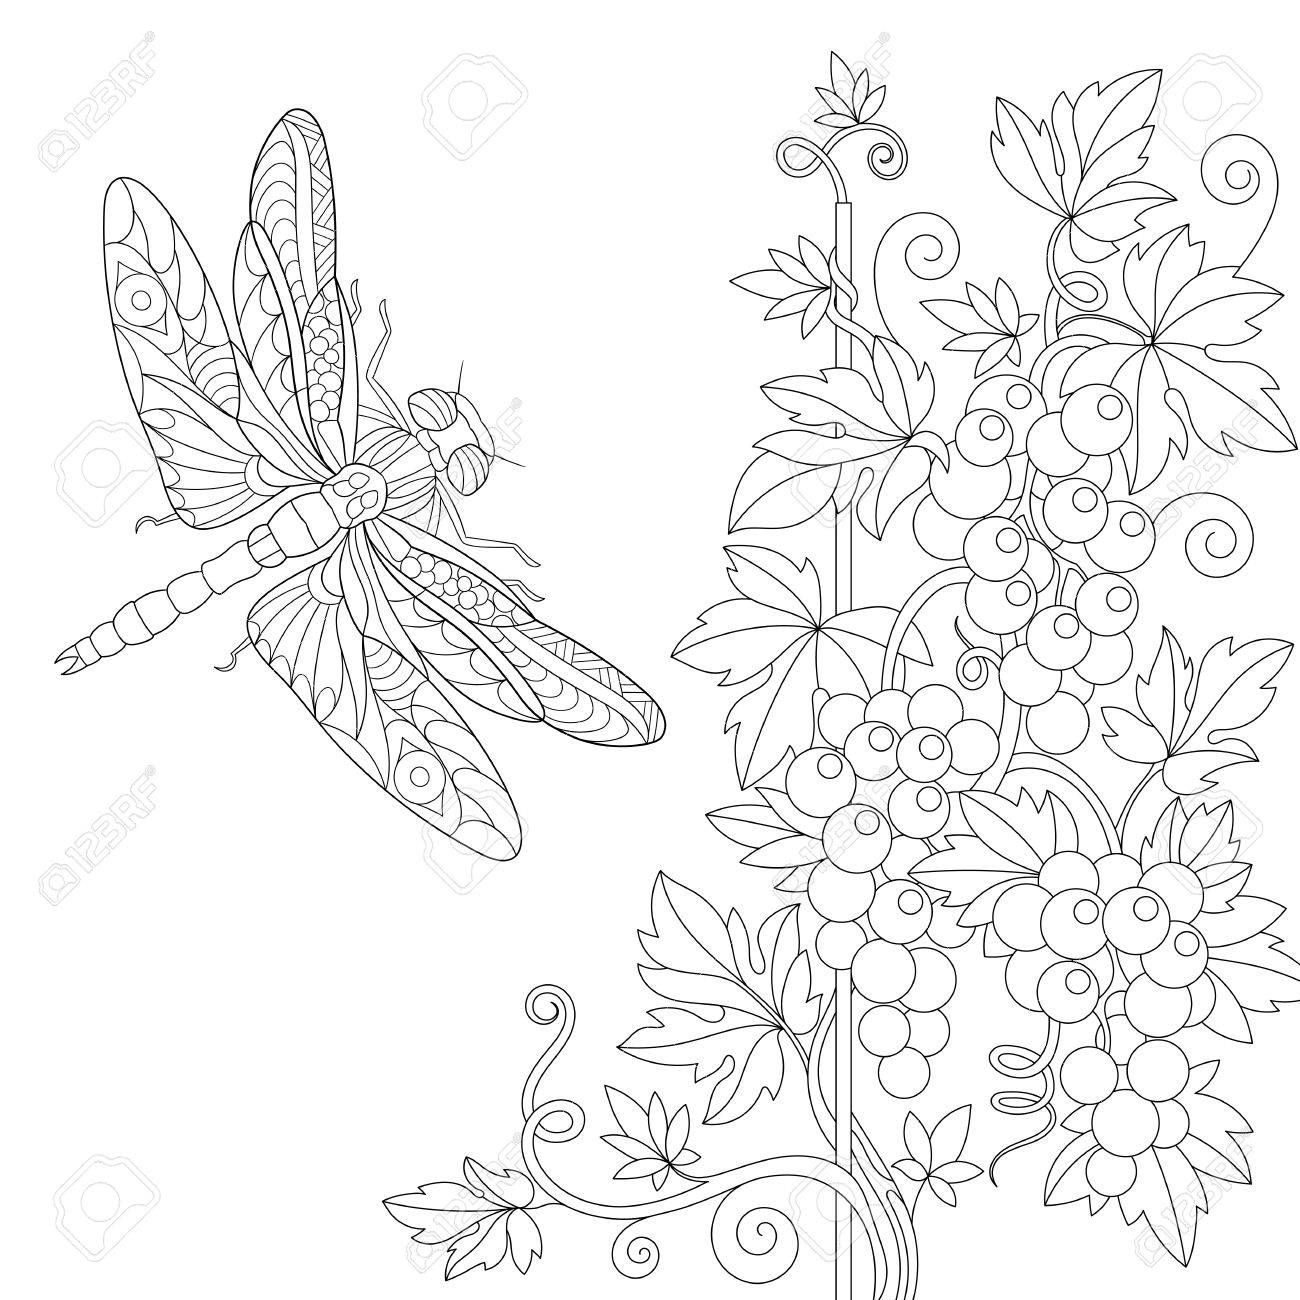 Coloring page of dragonfly and grape vine. Freehand sketch drawing..